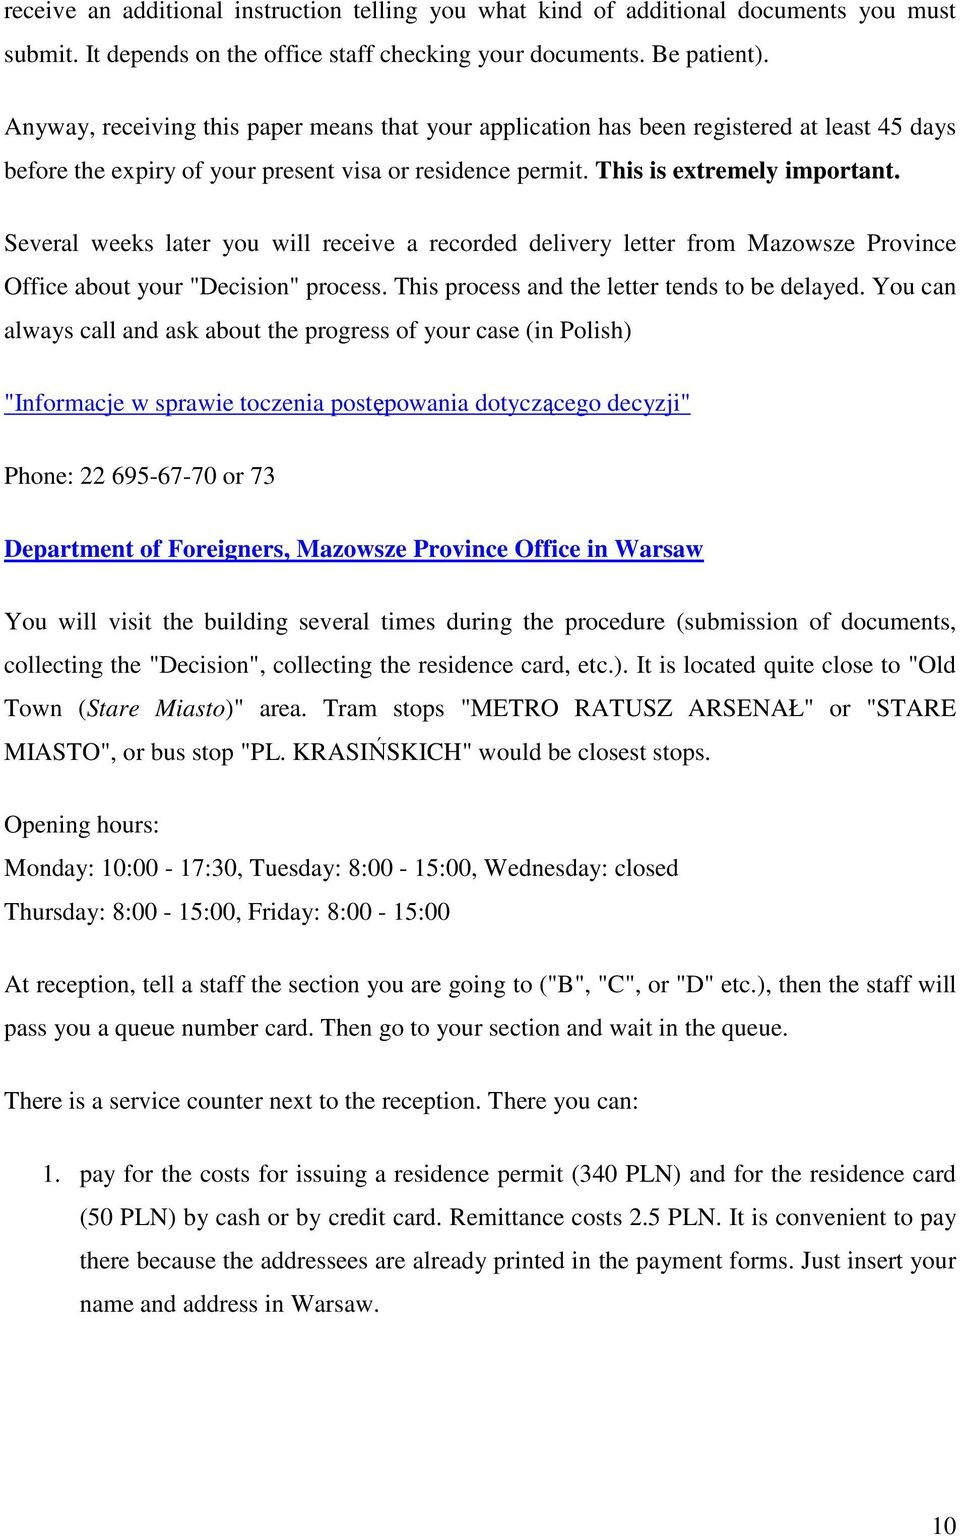 "Several weeks later you will receive a recorded delivery letter from Mazowsze Province Office about your ""Decision"" process. This process and the letter tends to be delayed."